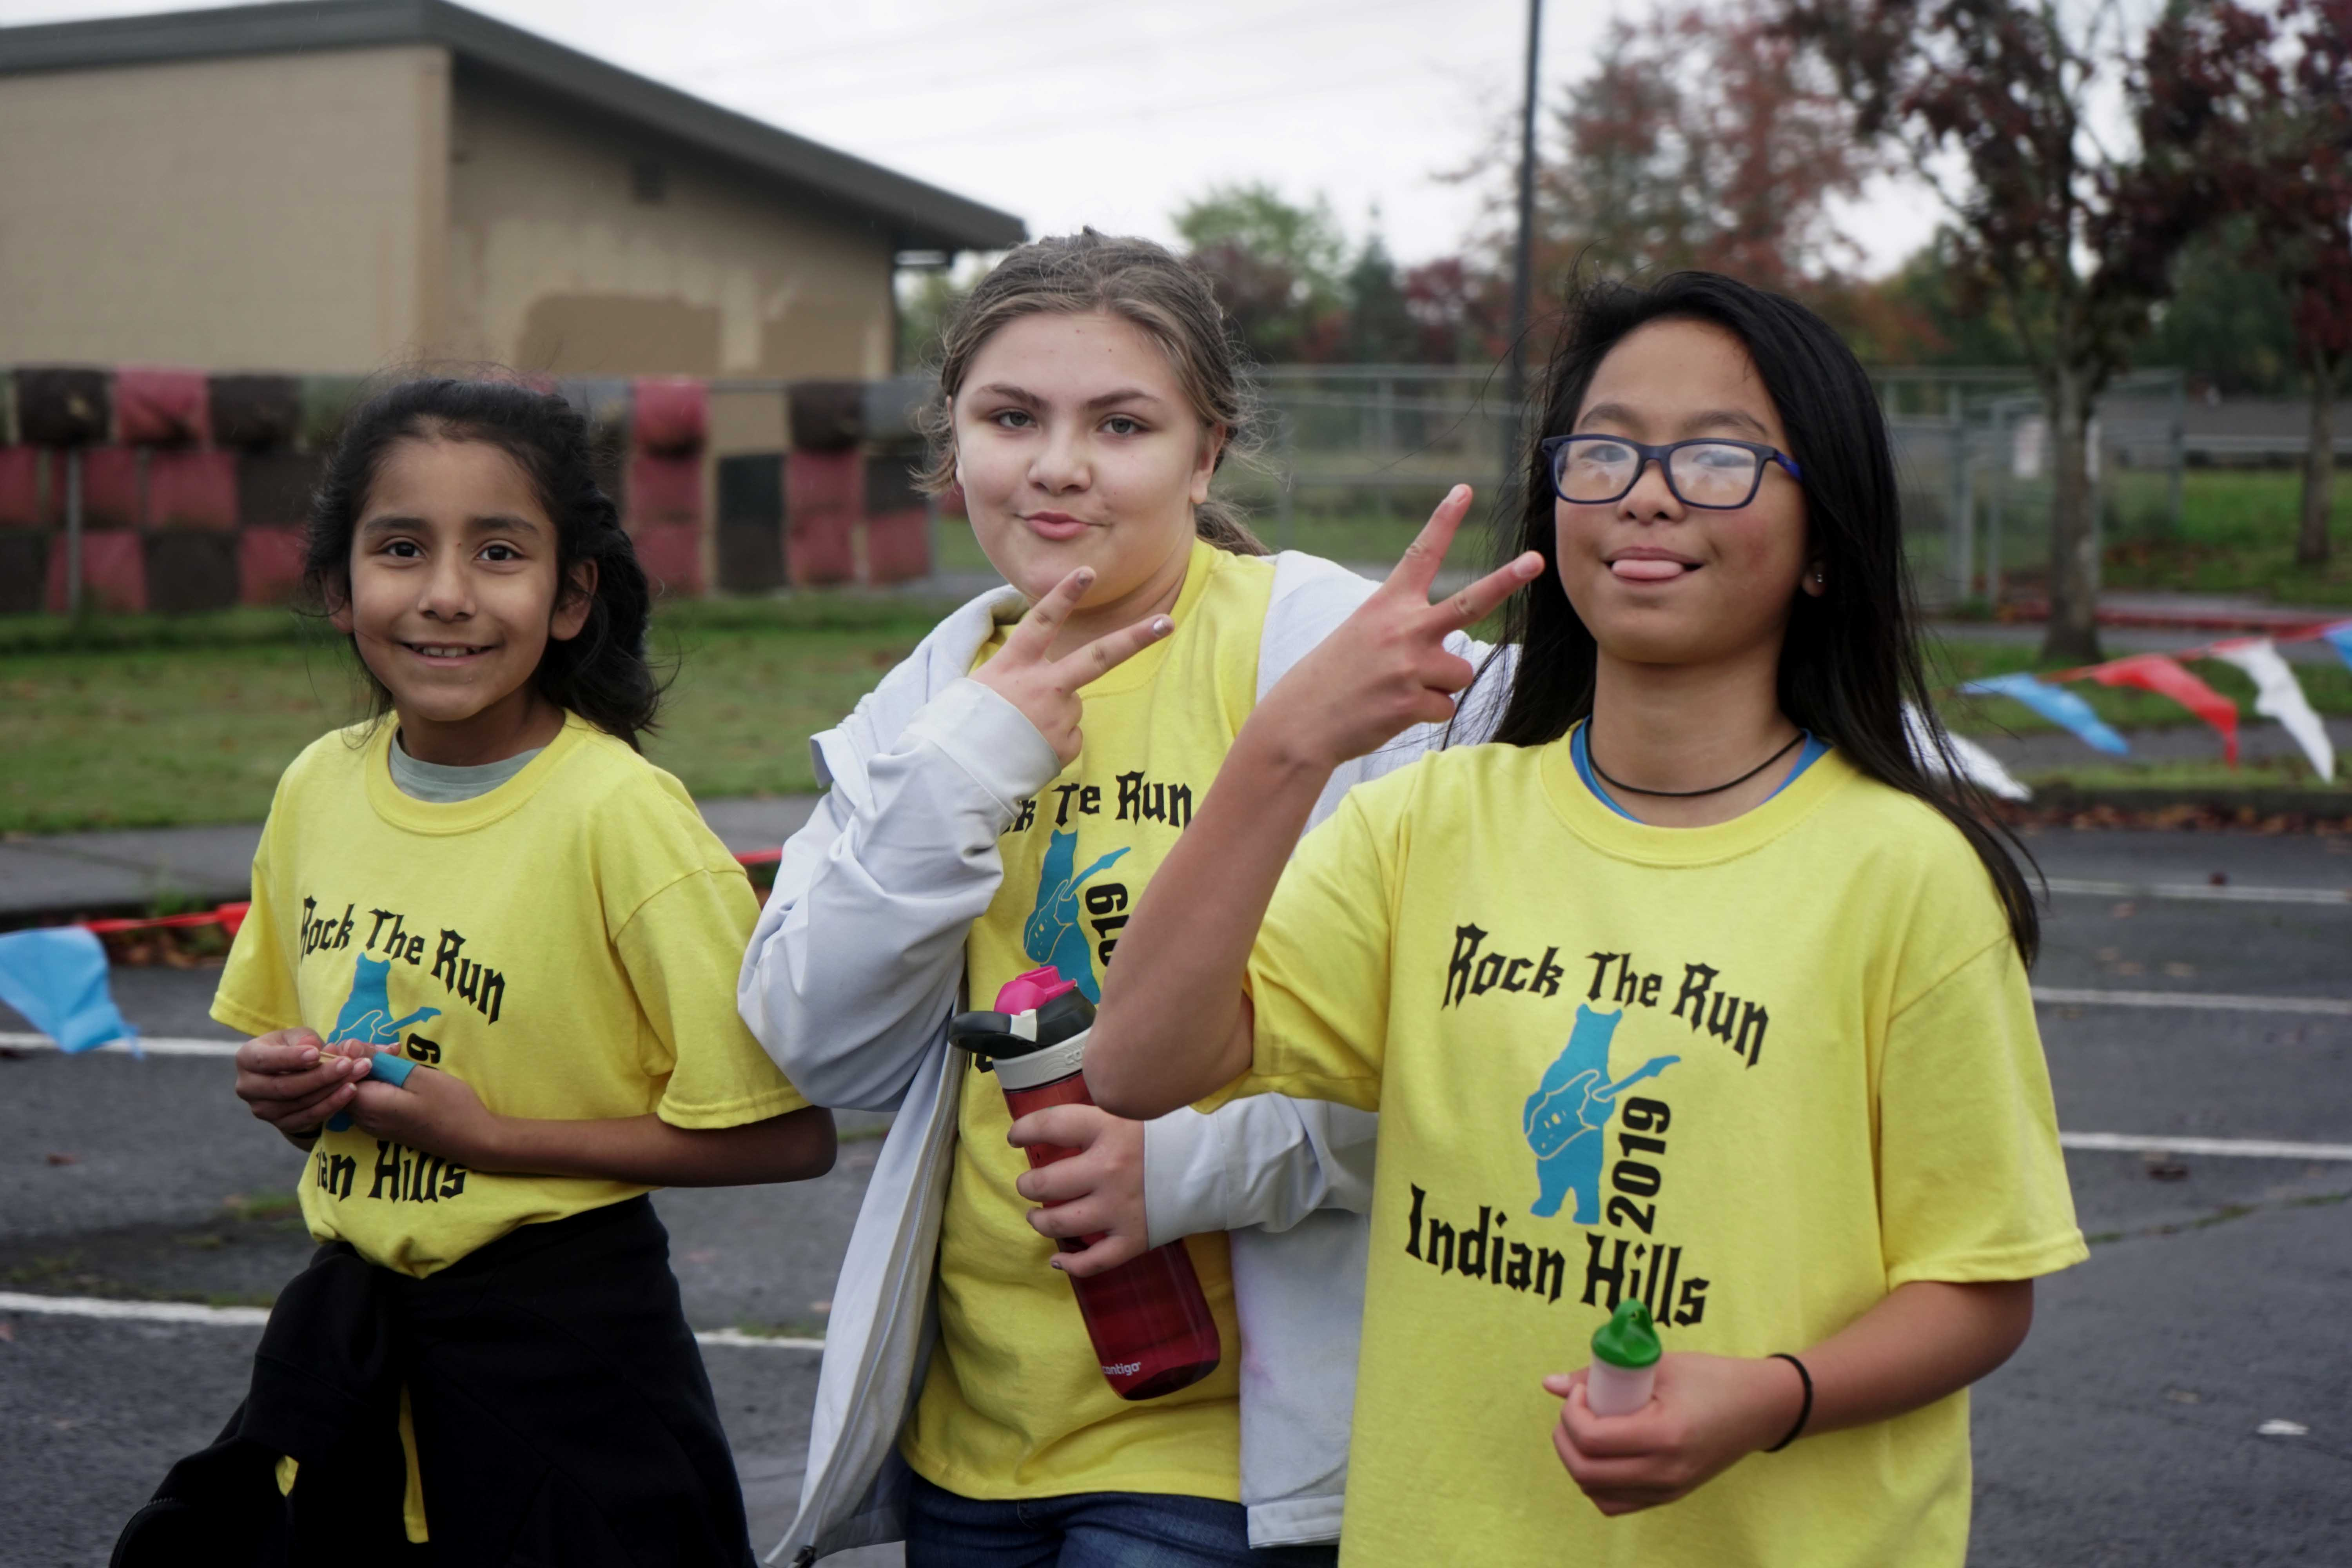 Indian Hills Fun Run